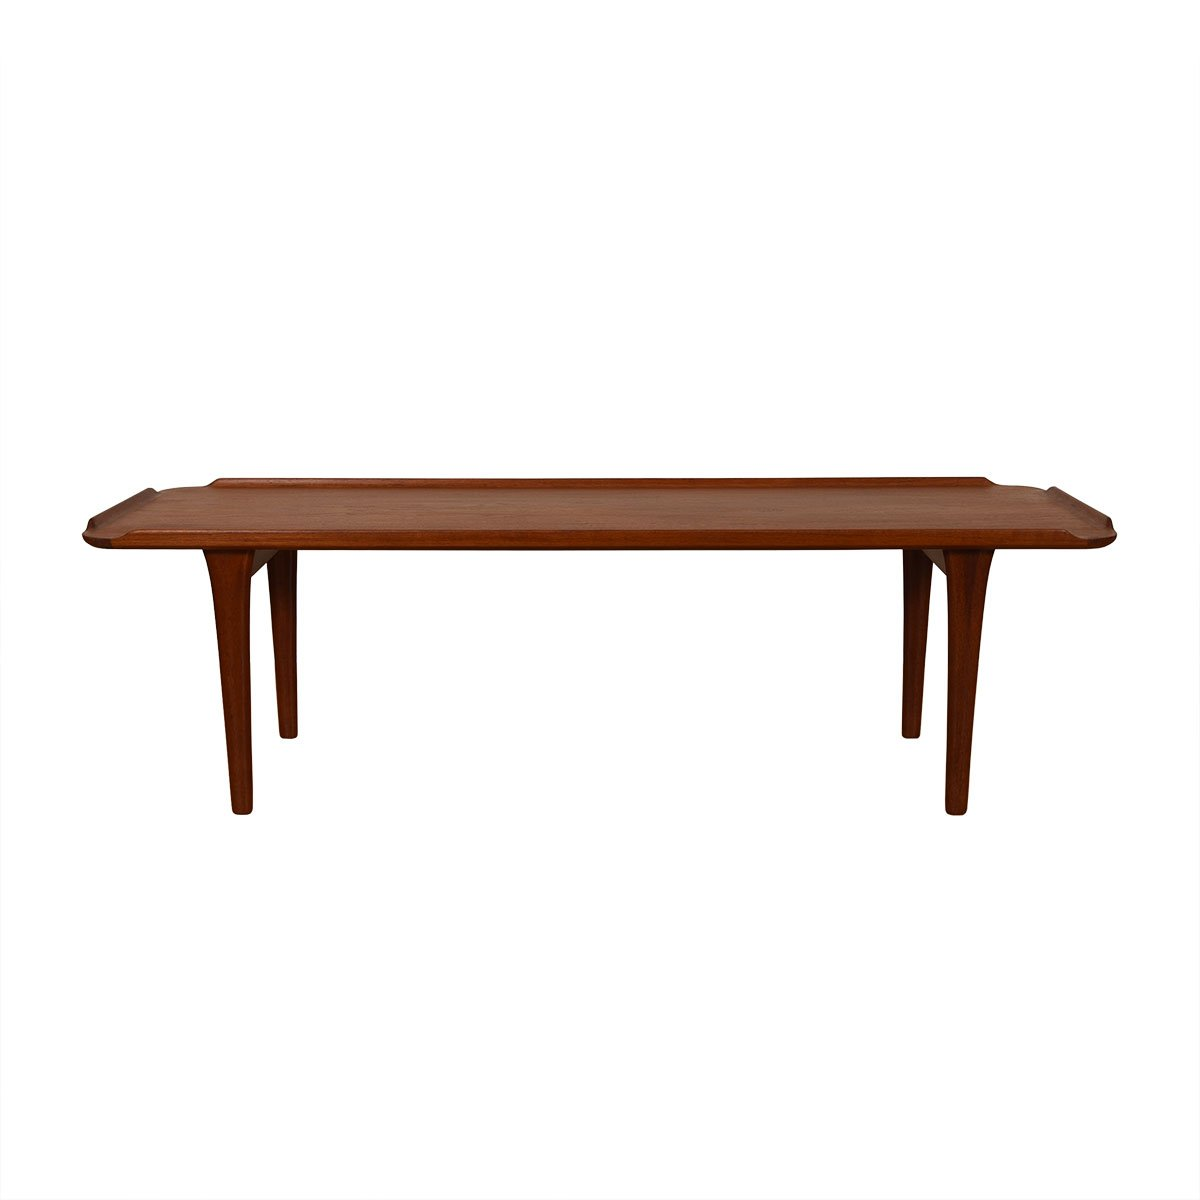 Danish Modern 'Raised-Edge' Teak Coffee Table